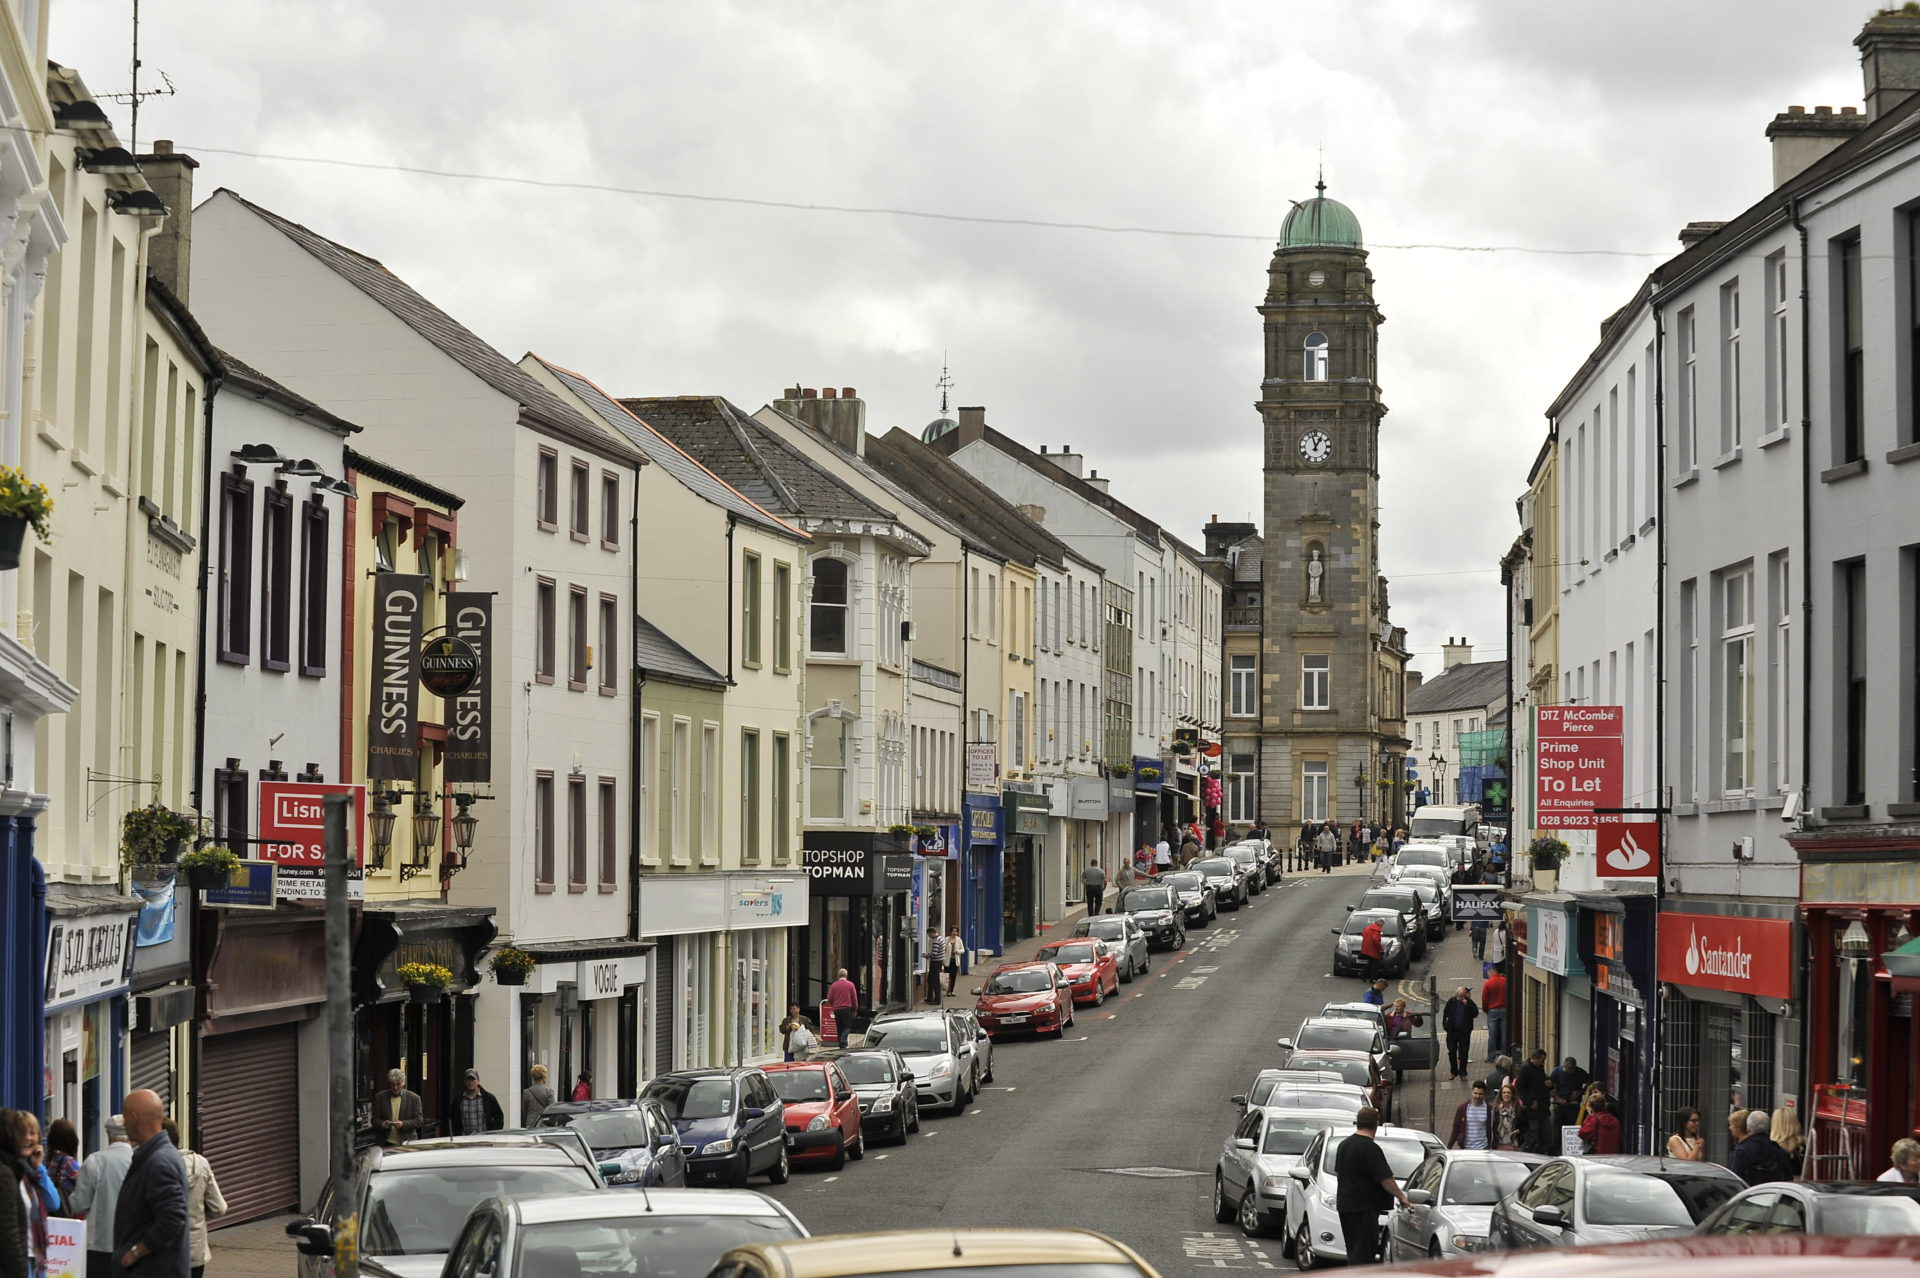 Opportunity To Have Your Say On Enniskillen Public Realm